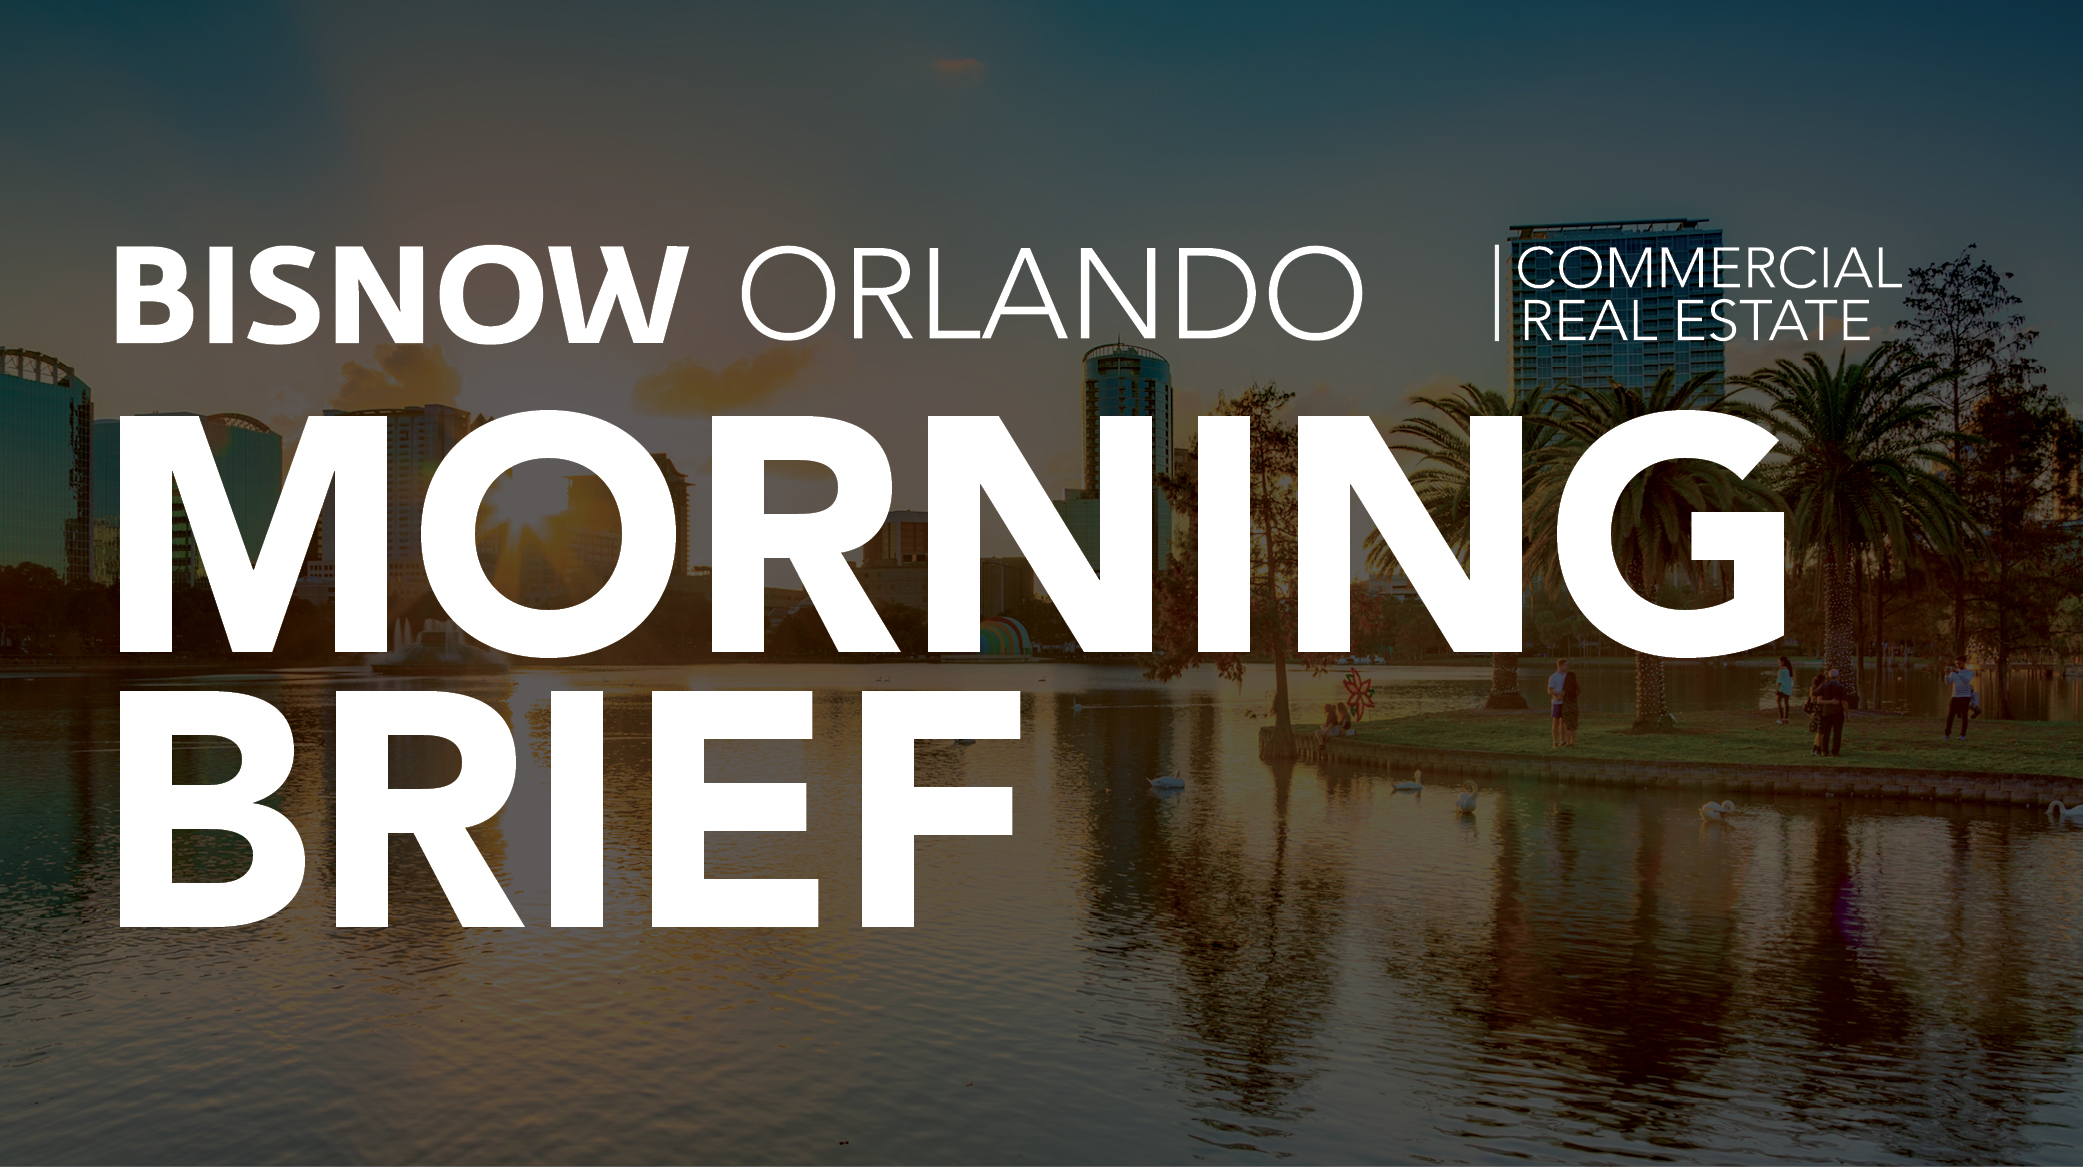 Bisnow Morning Brief Orlando